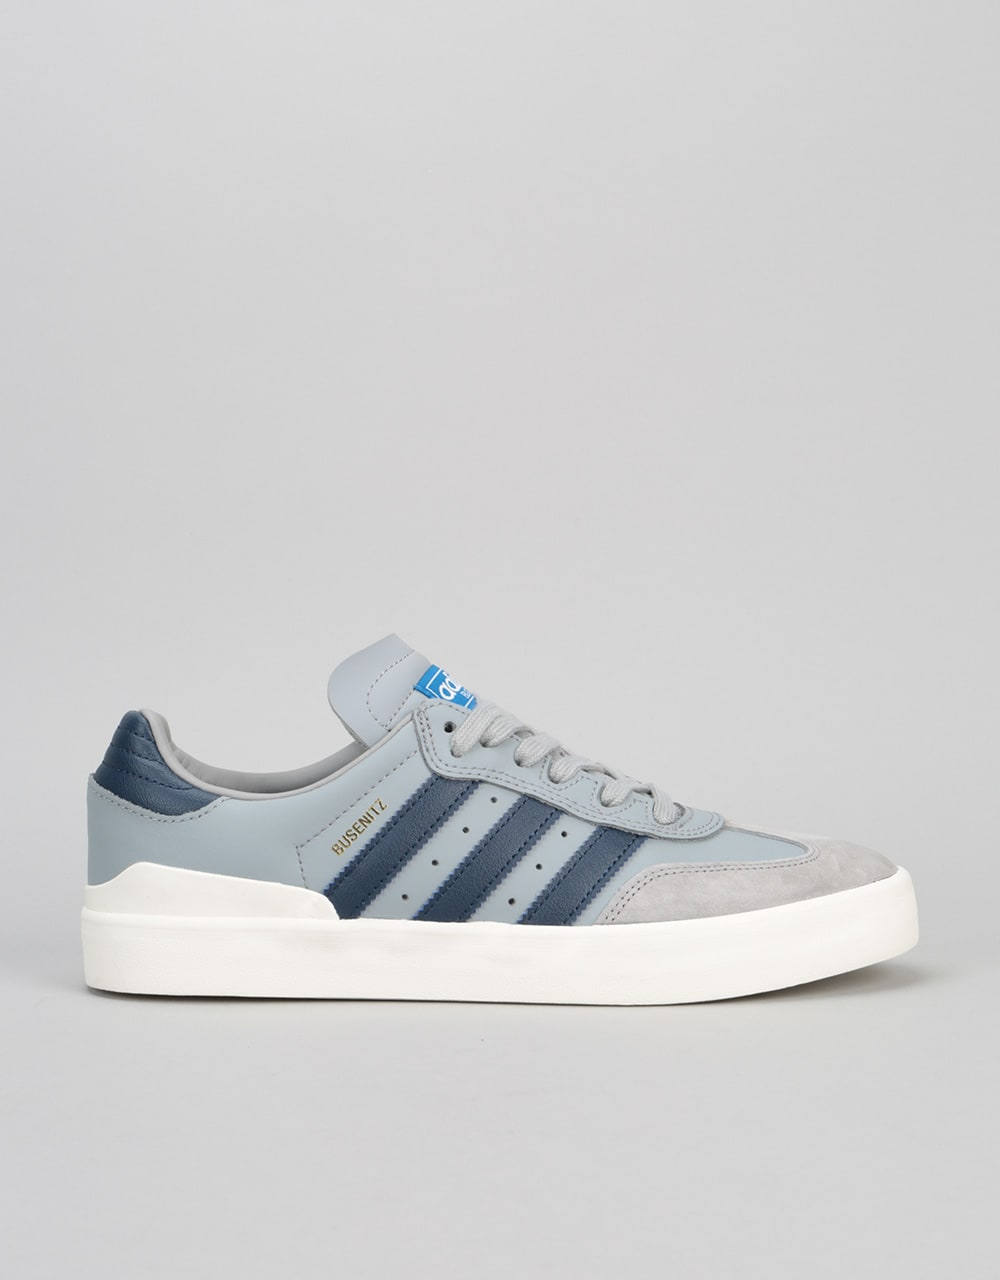 new product 0e560 3ec95 Adidas Busenitz Vulc Samba Edition Skate Shoes - Onix Navy Blue   Sale    Clearance   Cheap Skate Clothing, Footwear   Hardware   Route One